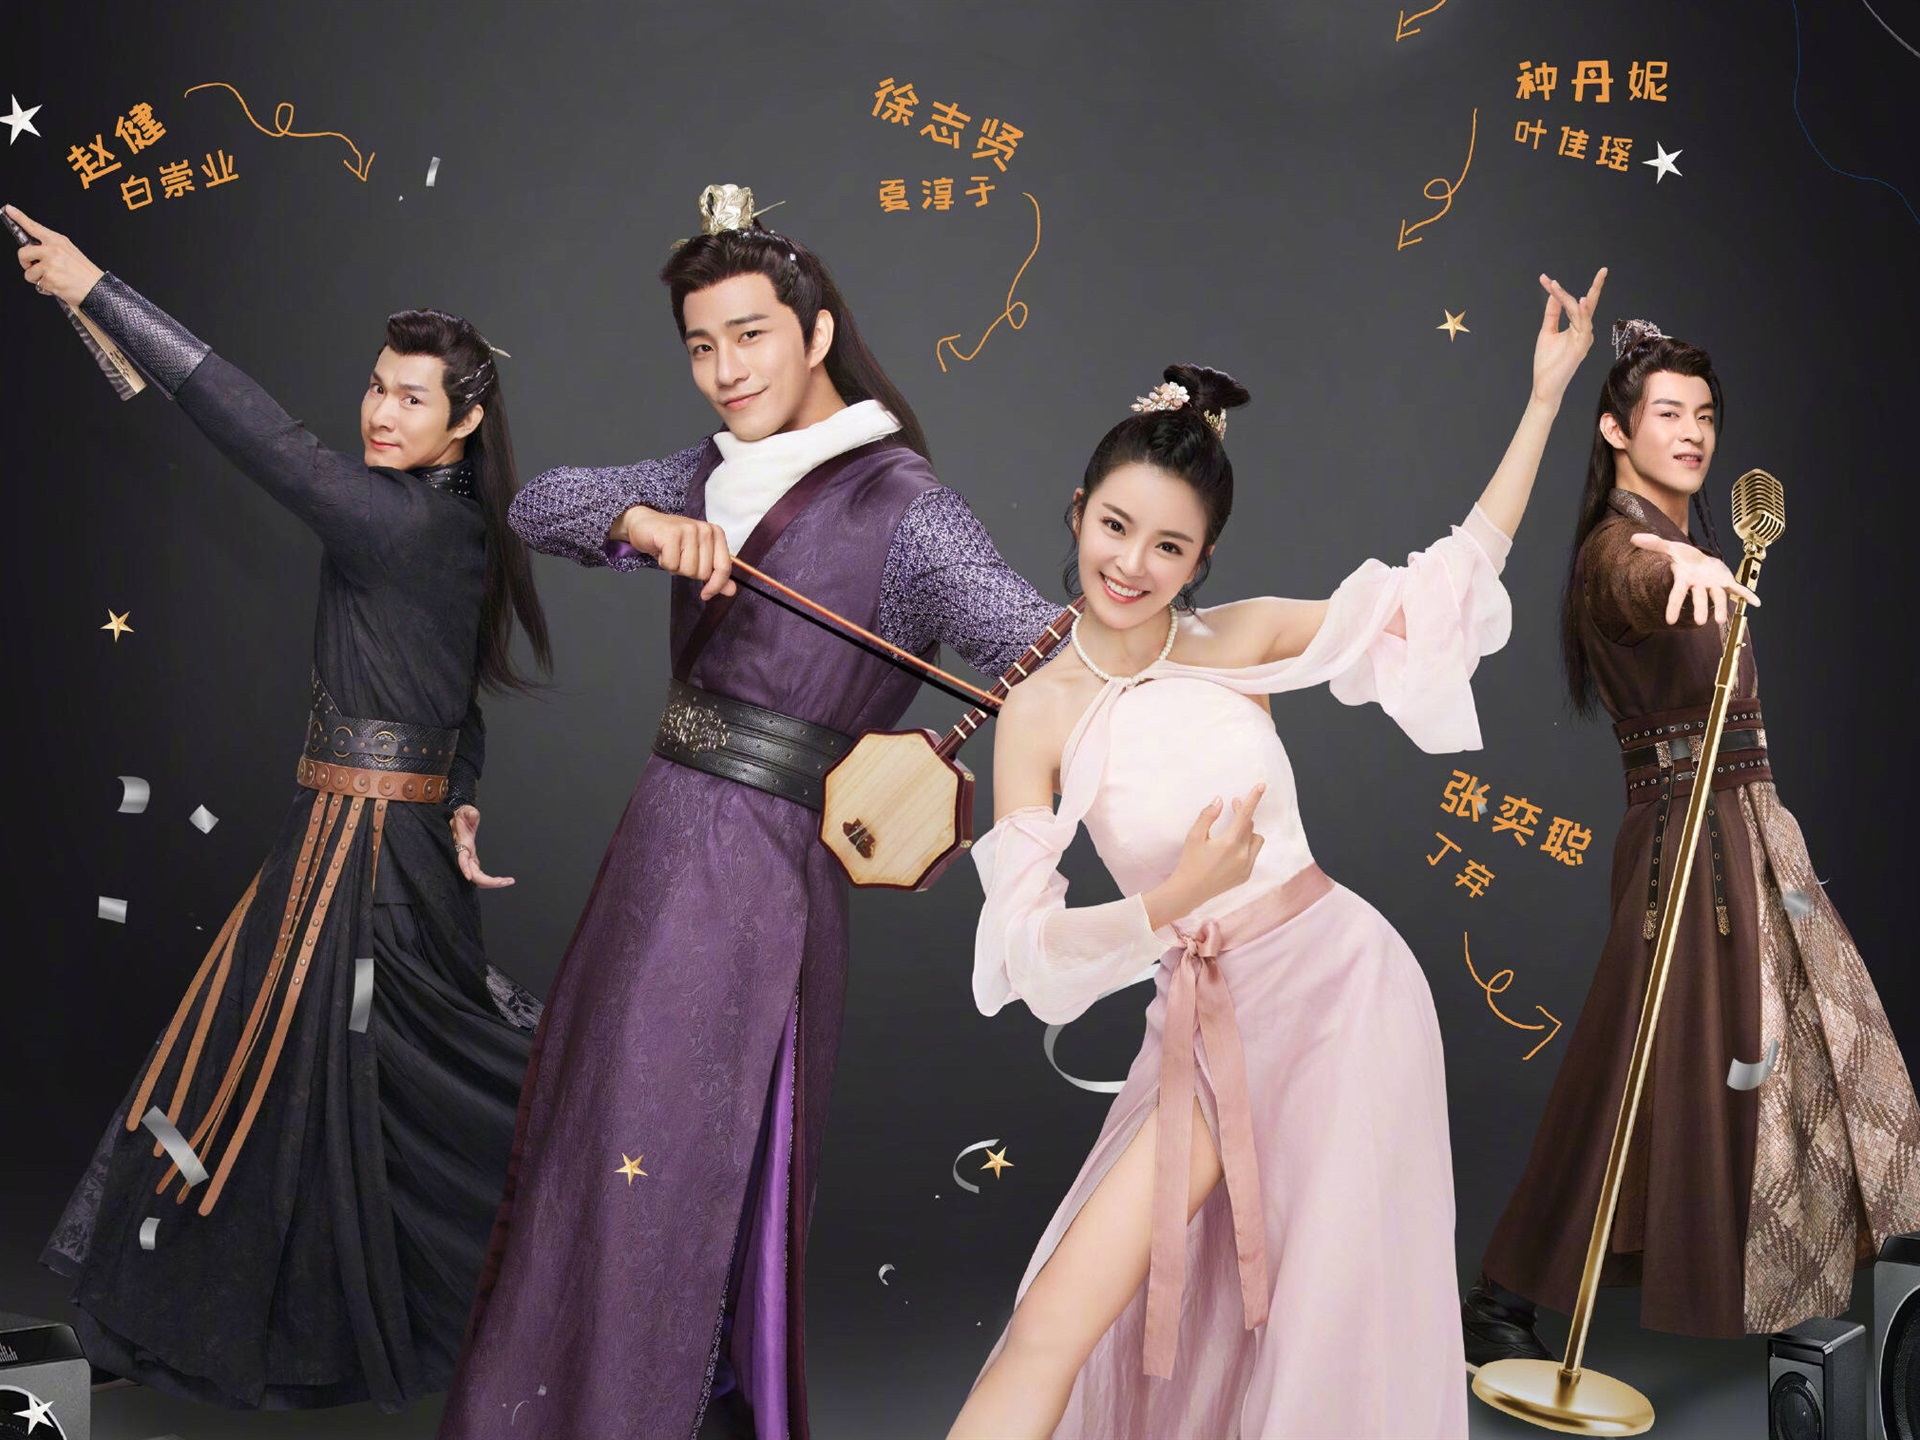 Wallpaper Cinderella Chef Chinese Net Tv Series 1920x1440 Hd Picture Image